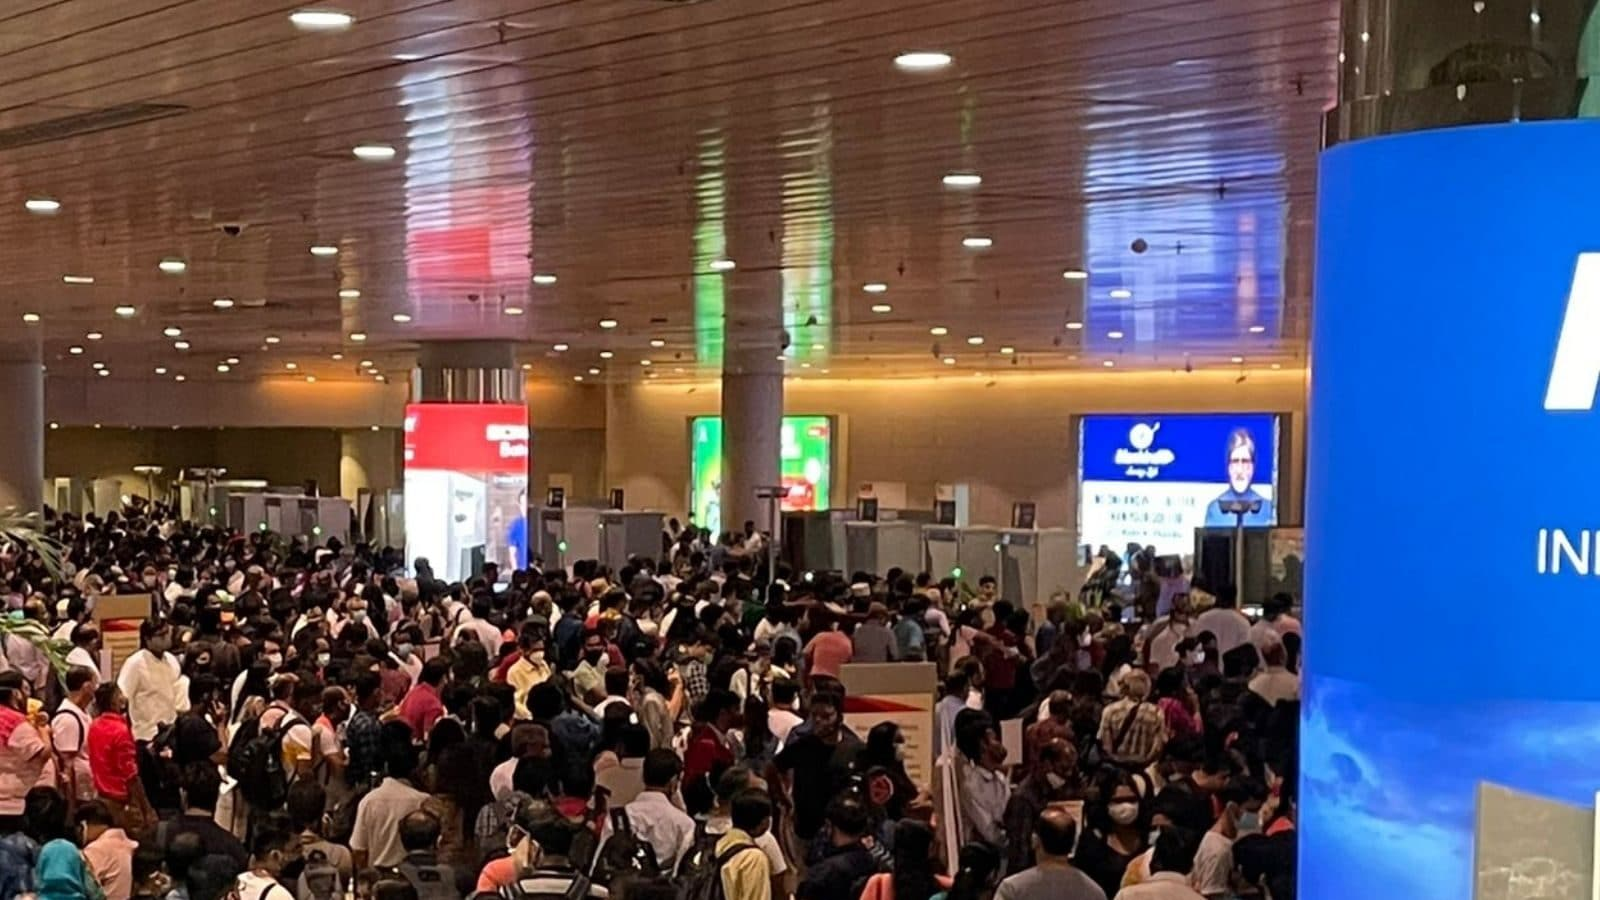 Mumbai- people are throwing luggage and chaos everywhere, heavy Navratri rush turns airport into a panic box